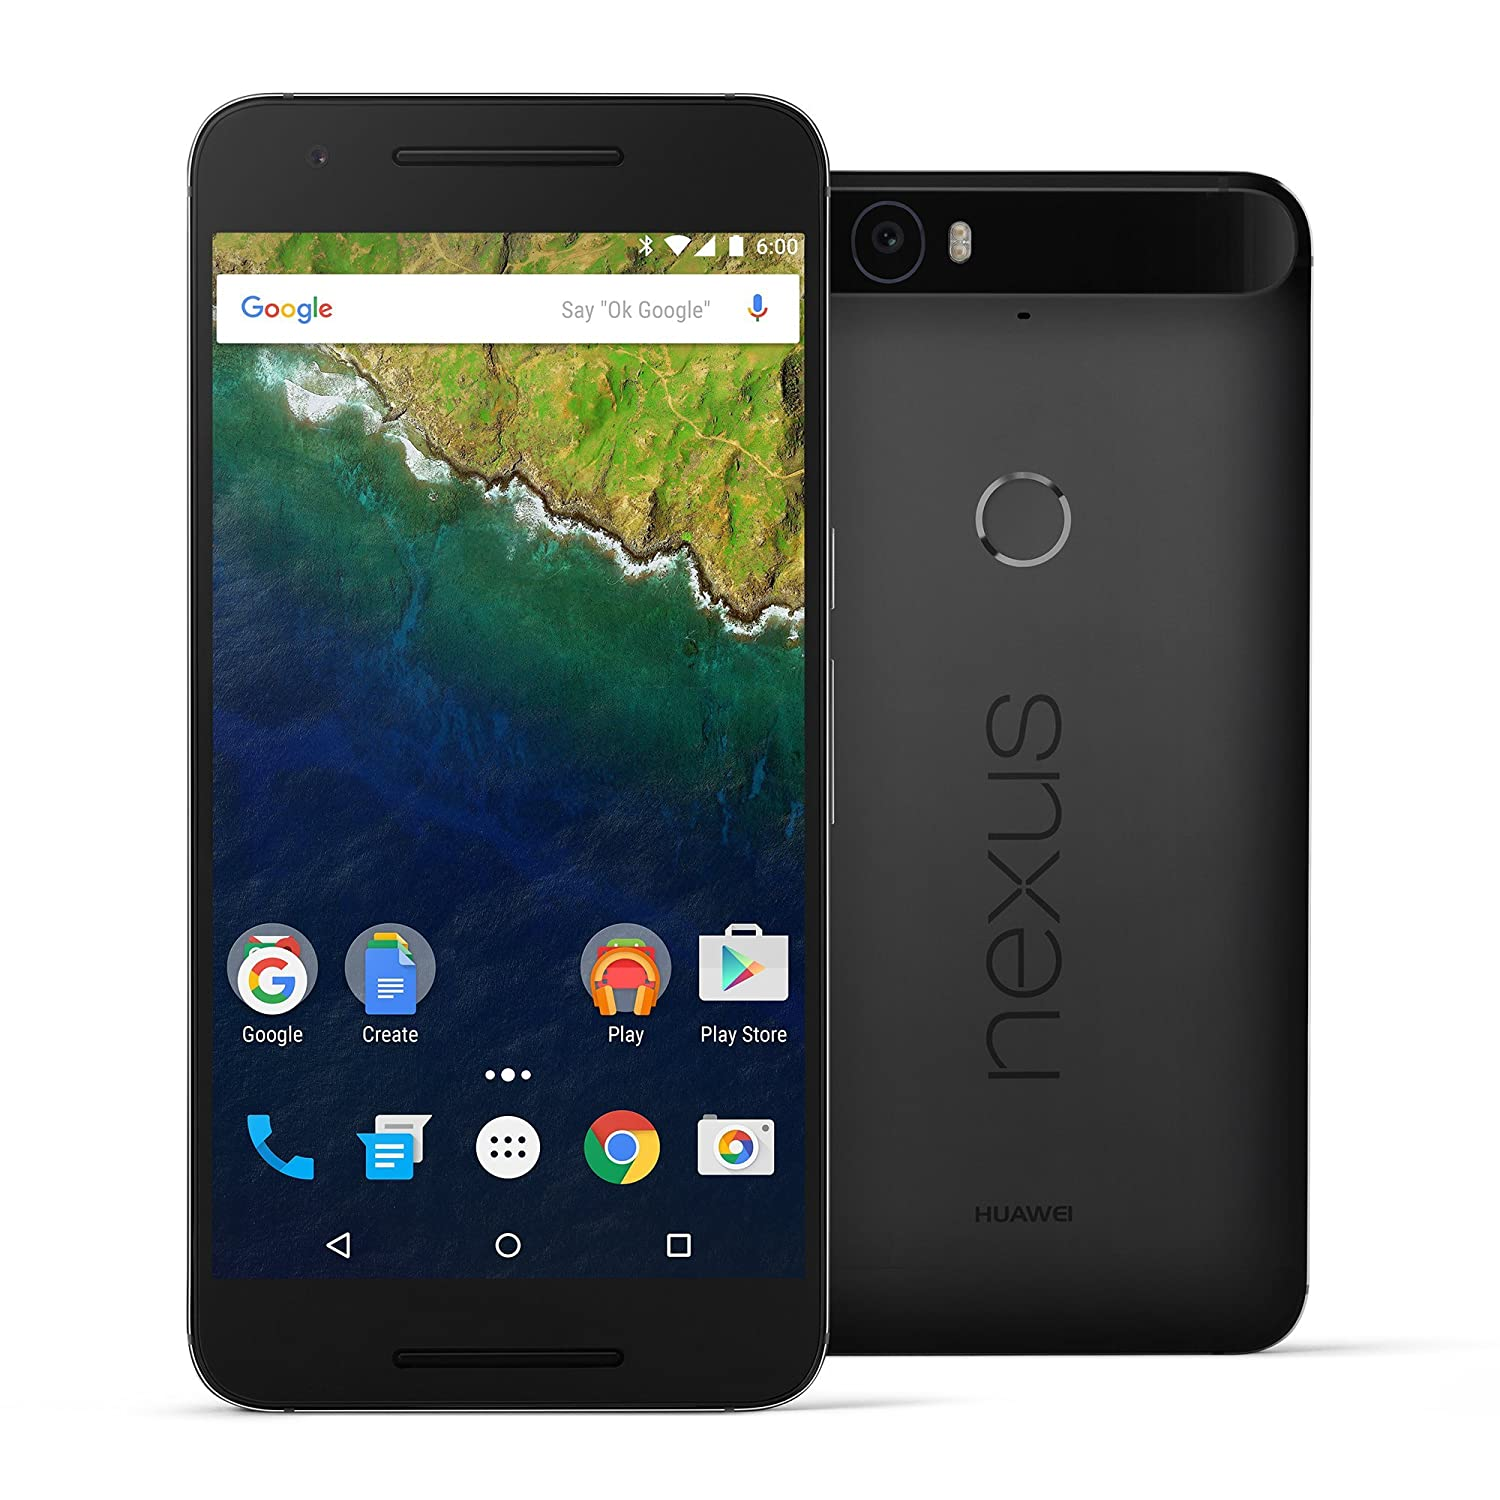 Huawei Nexus 6P - 64 GB Graphite (U.S. Version: Nin-A12) - Unlocked 5.7-inch Android 6.0 smartphone w/ 4G LTE (U.S. Warranty)